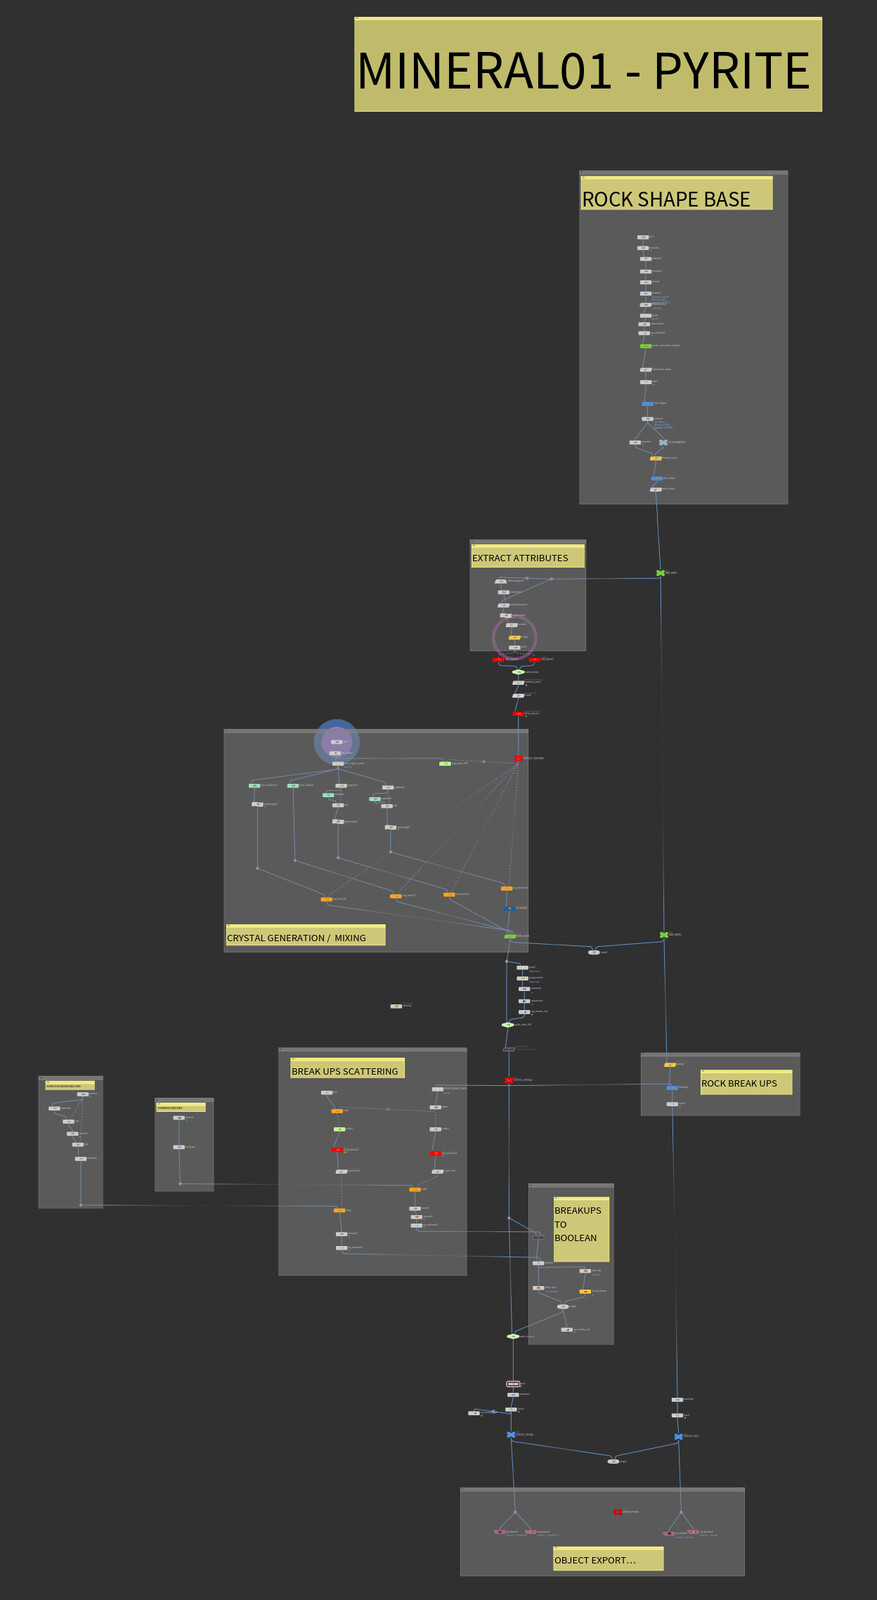 Houdini node graph of the project. I like to keep things as organized as possible so the graph looks like a clear representation of my train of thoughts. Also very helpful for debug.